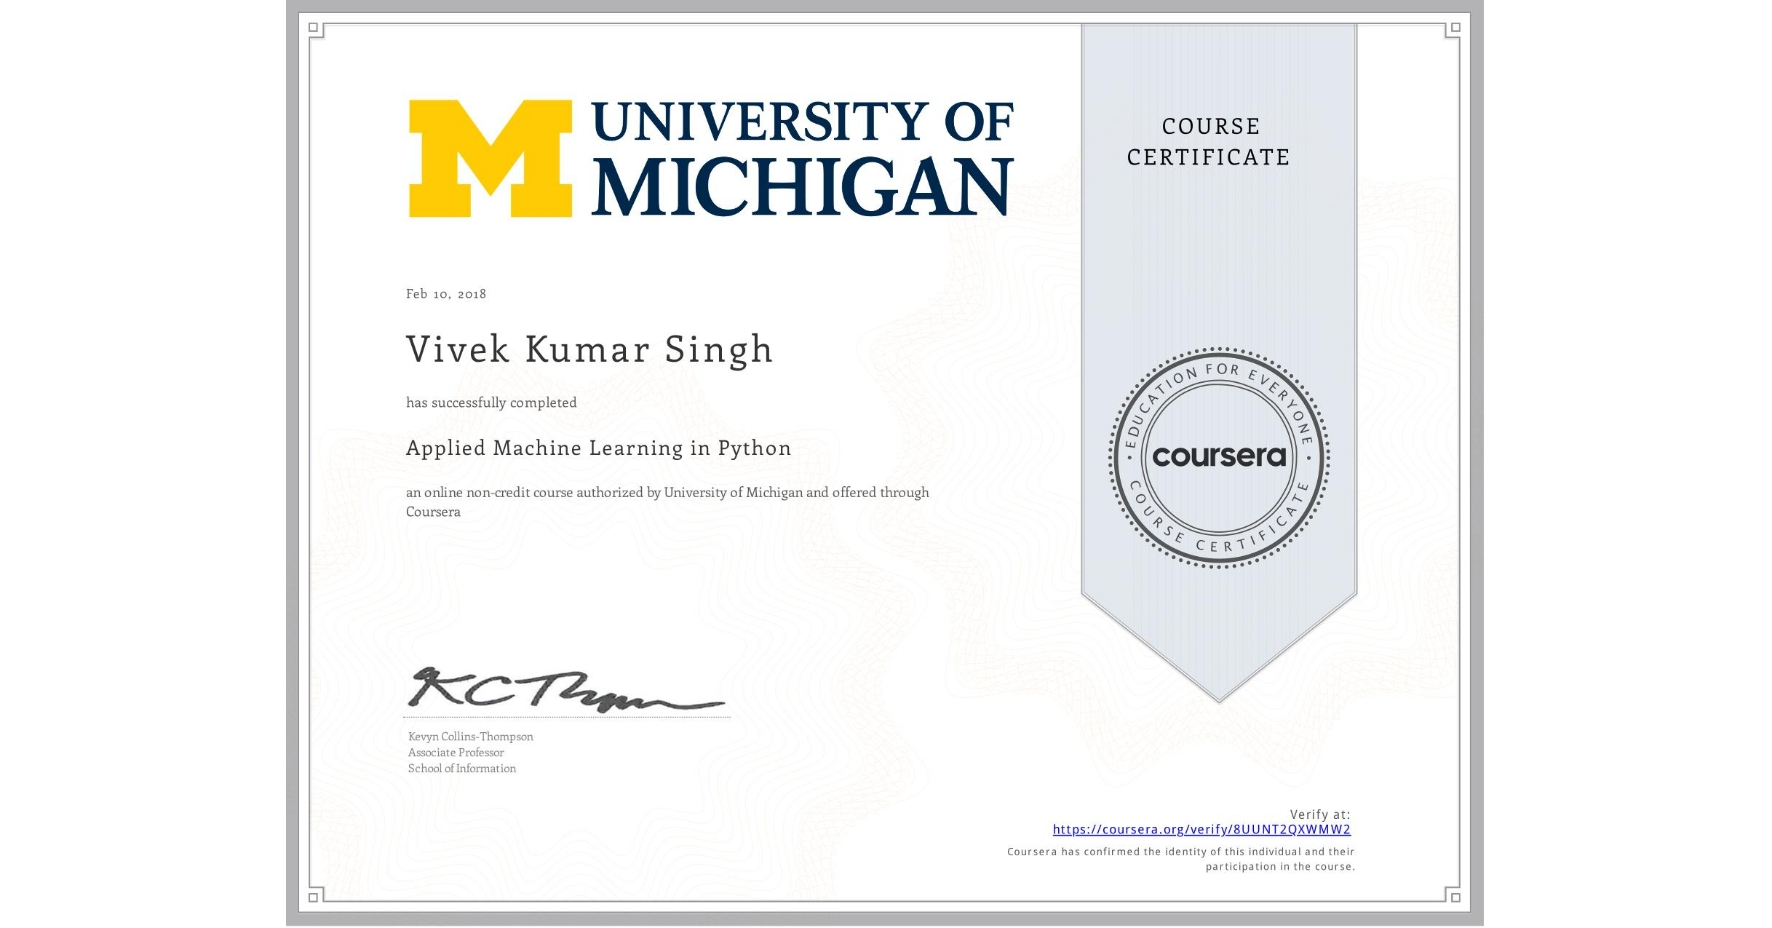 View certificate for Vivek Kumar Singh, Applied Machine Learning in Python, an online non-credit course authorized by University of Michigan and offered through Coursera